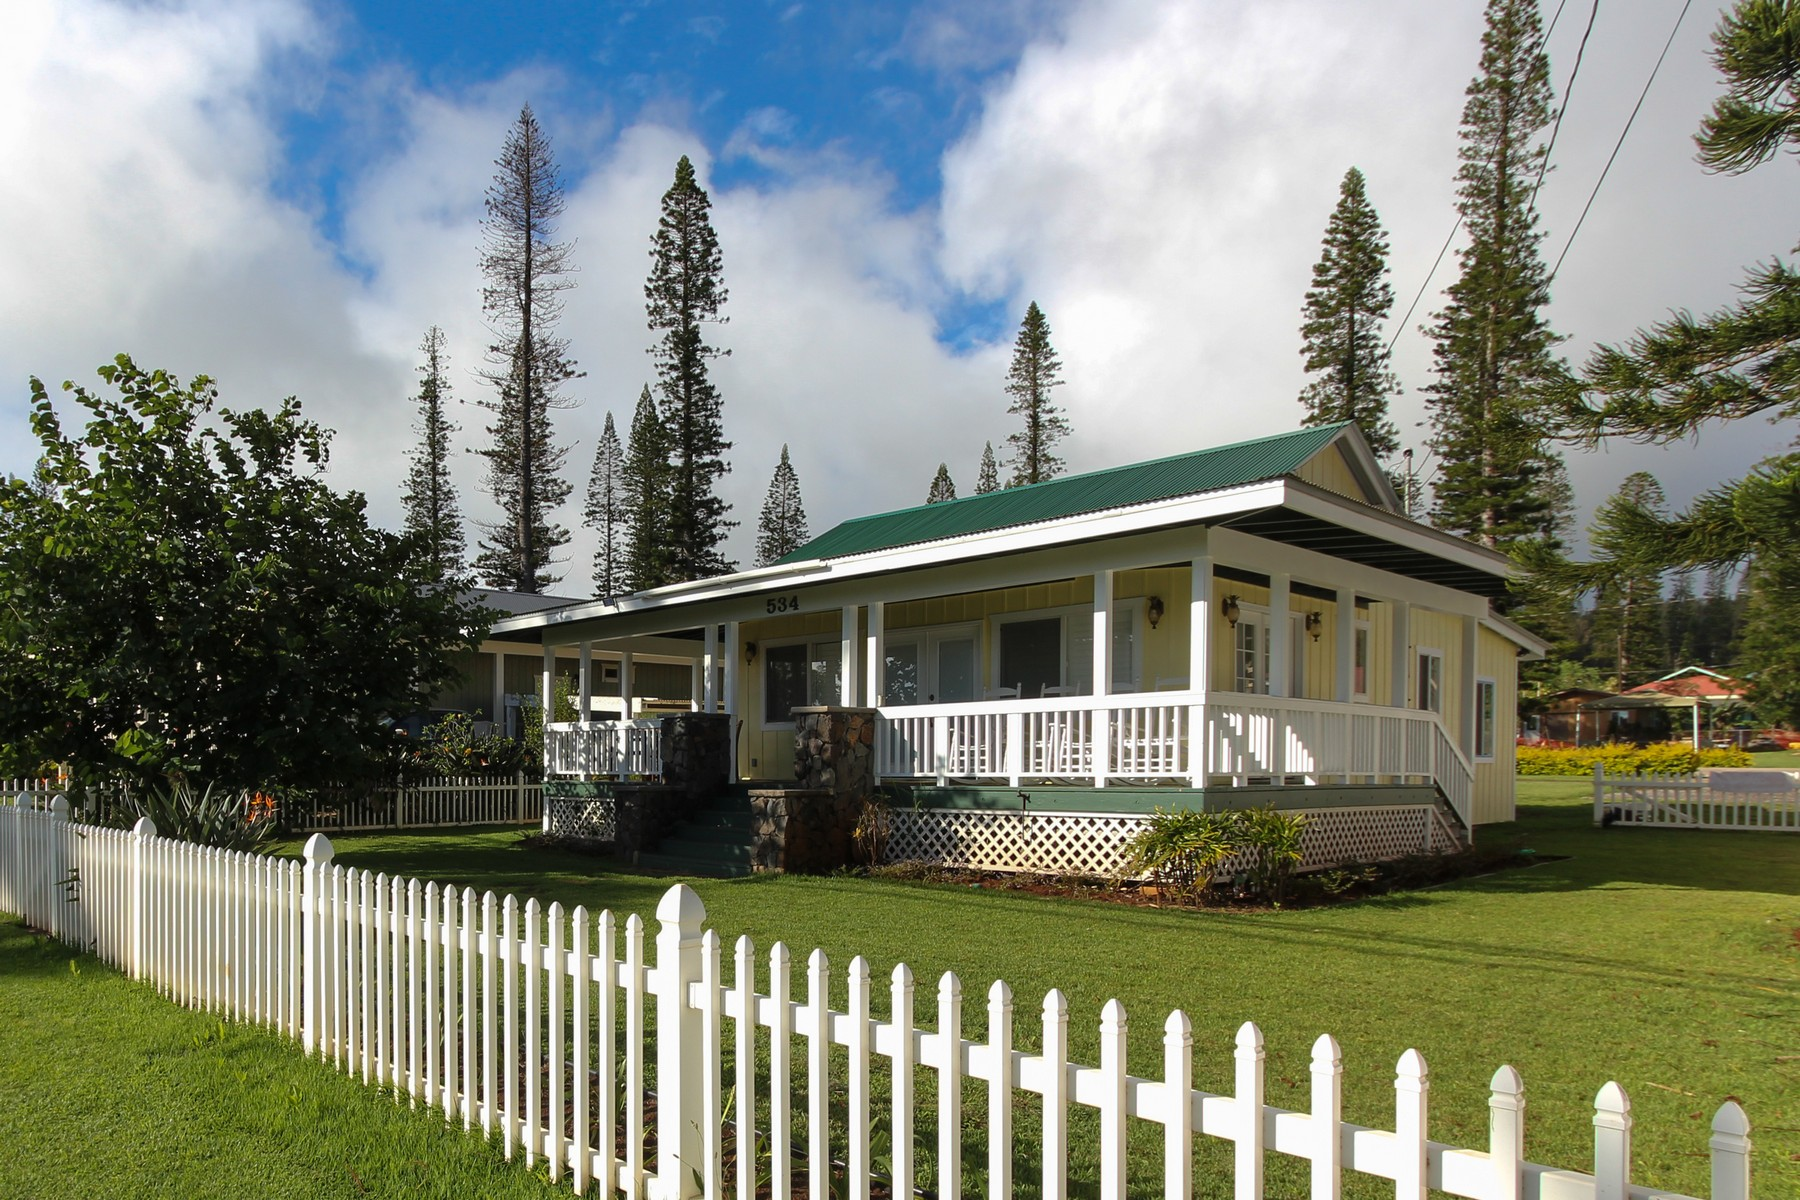 Single Family Home for Sale at Plantation Style Perfection on Lana'i 534 Fraser Avenue, Lanai City, Hawaii, 96763 United States